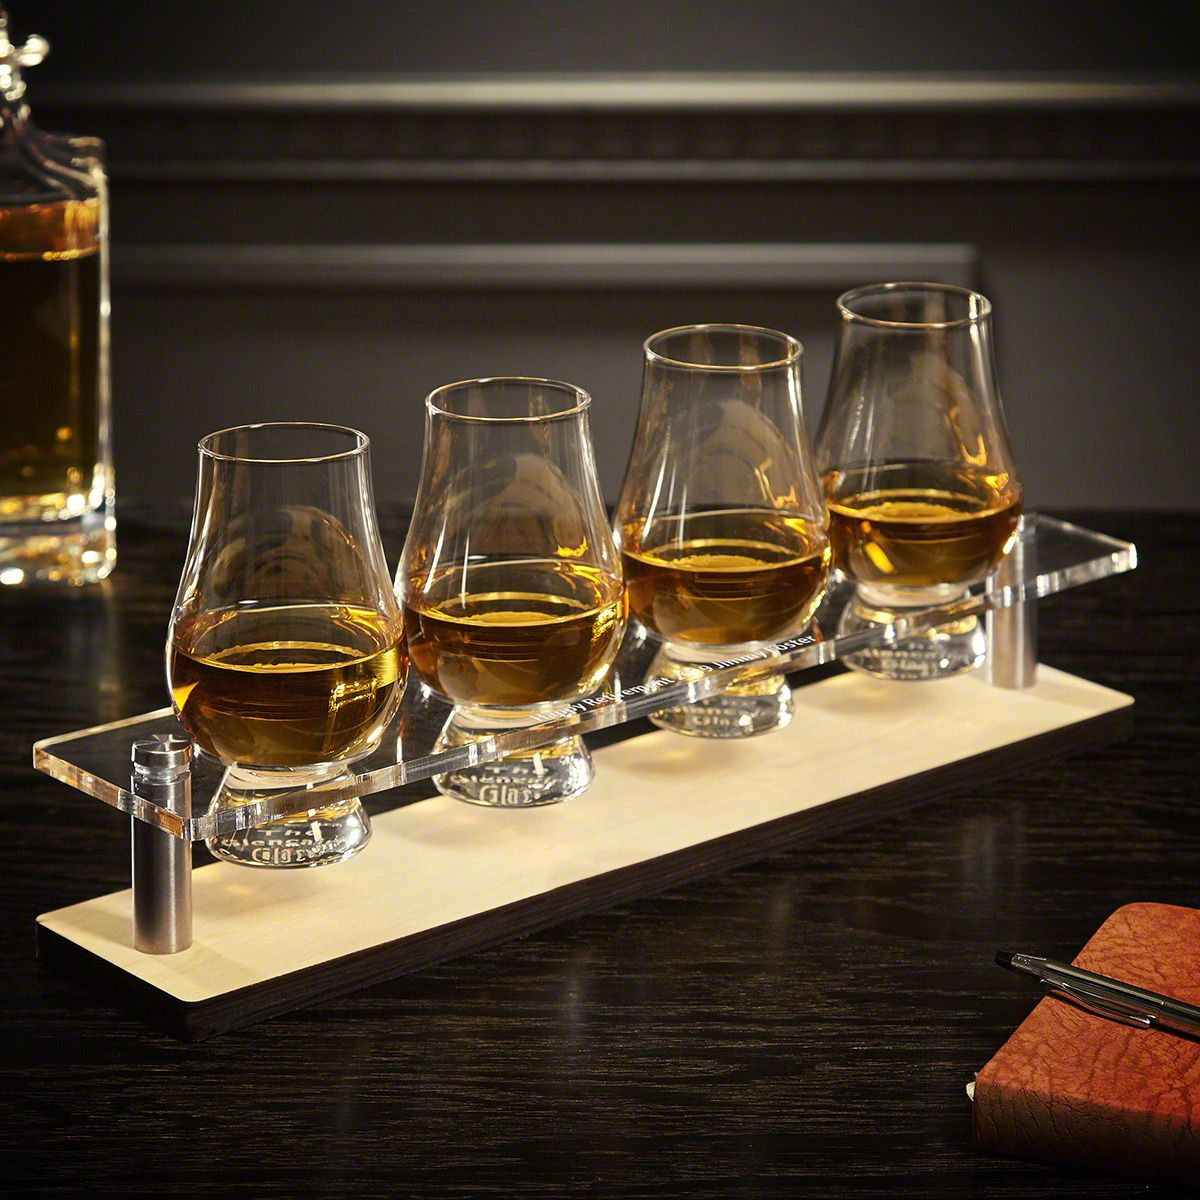 Glencairn Personalized Serving Tray 5 pc Set